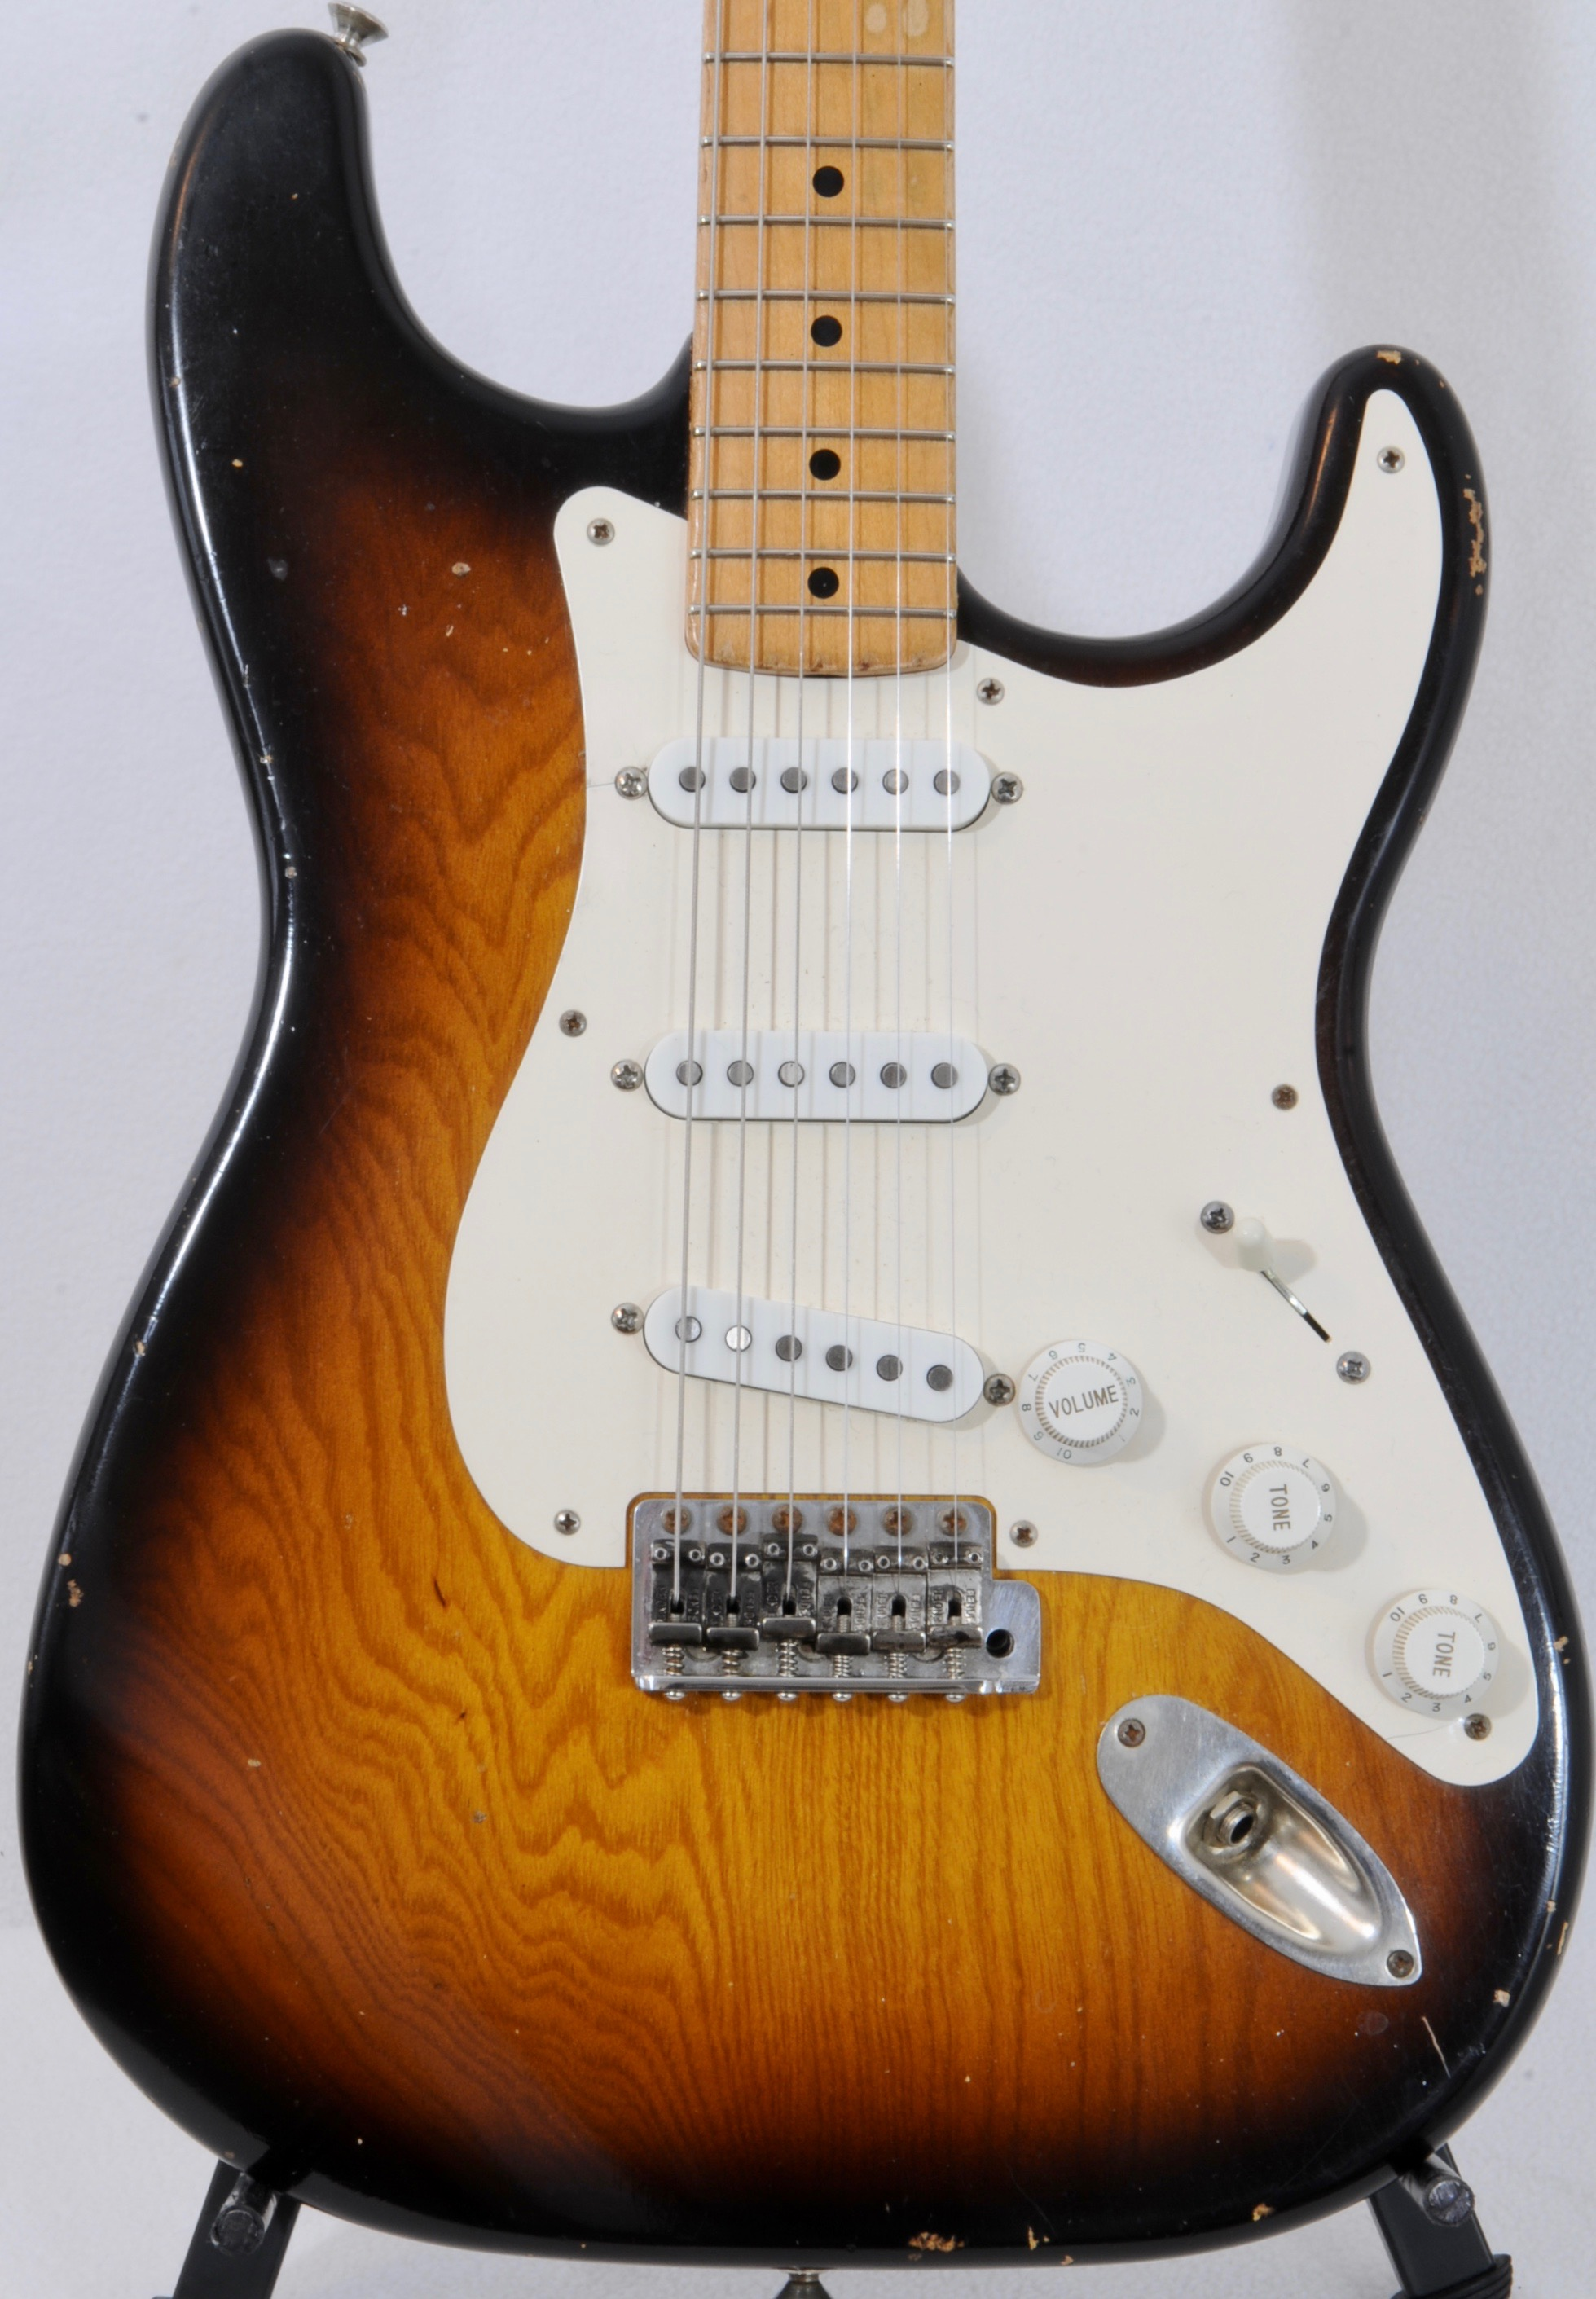 Chad UNDERWOOD Strat